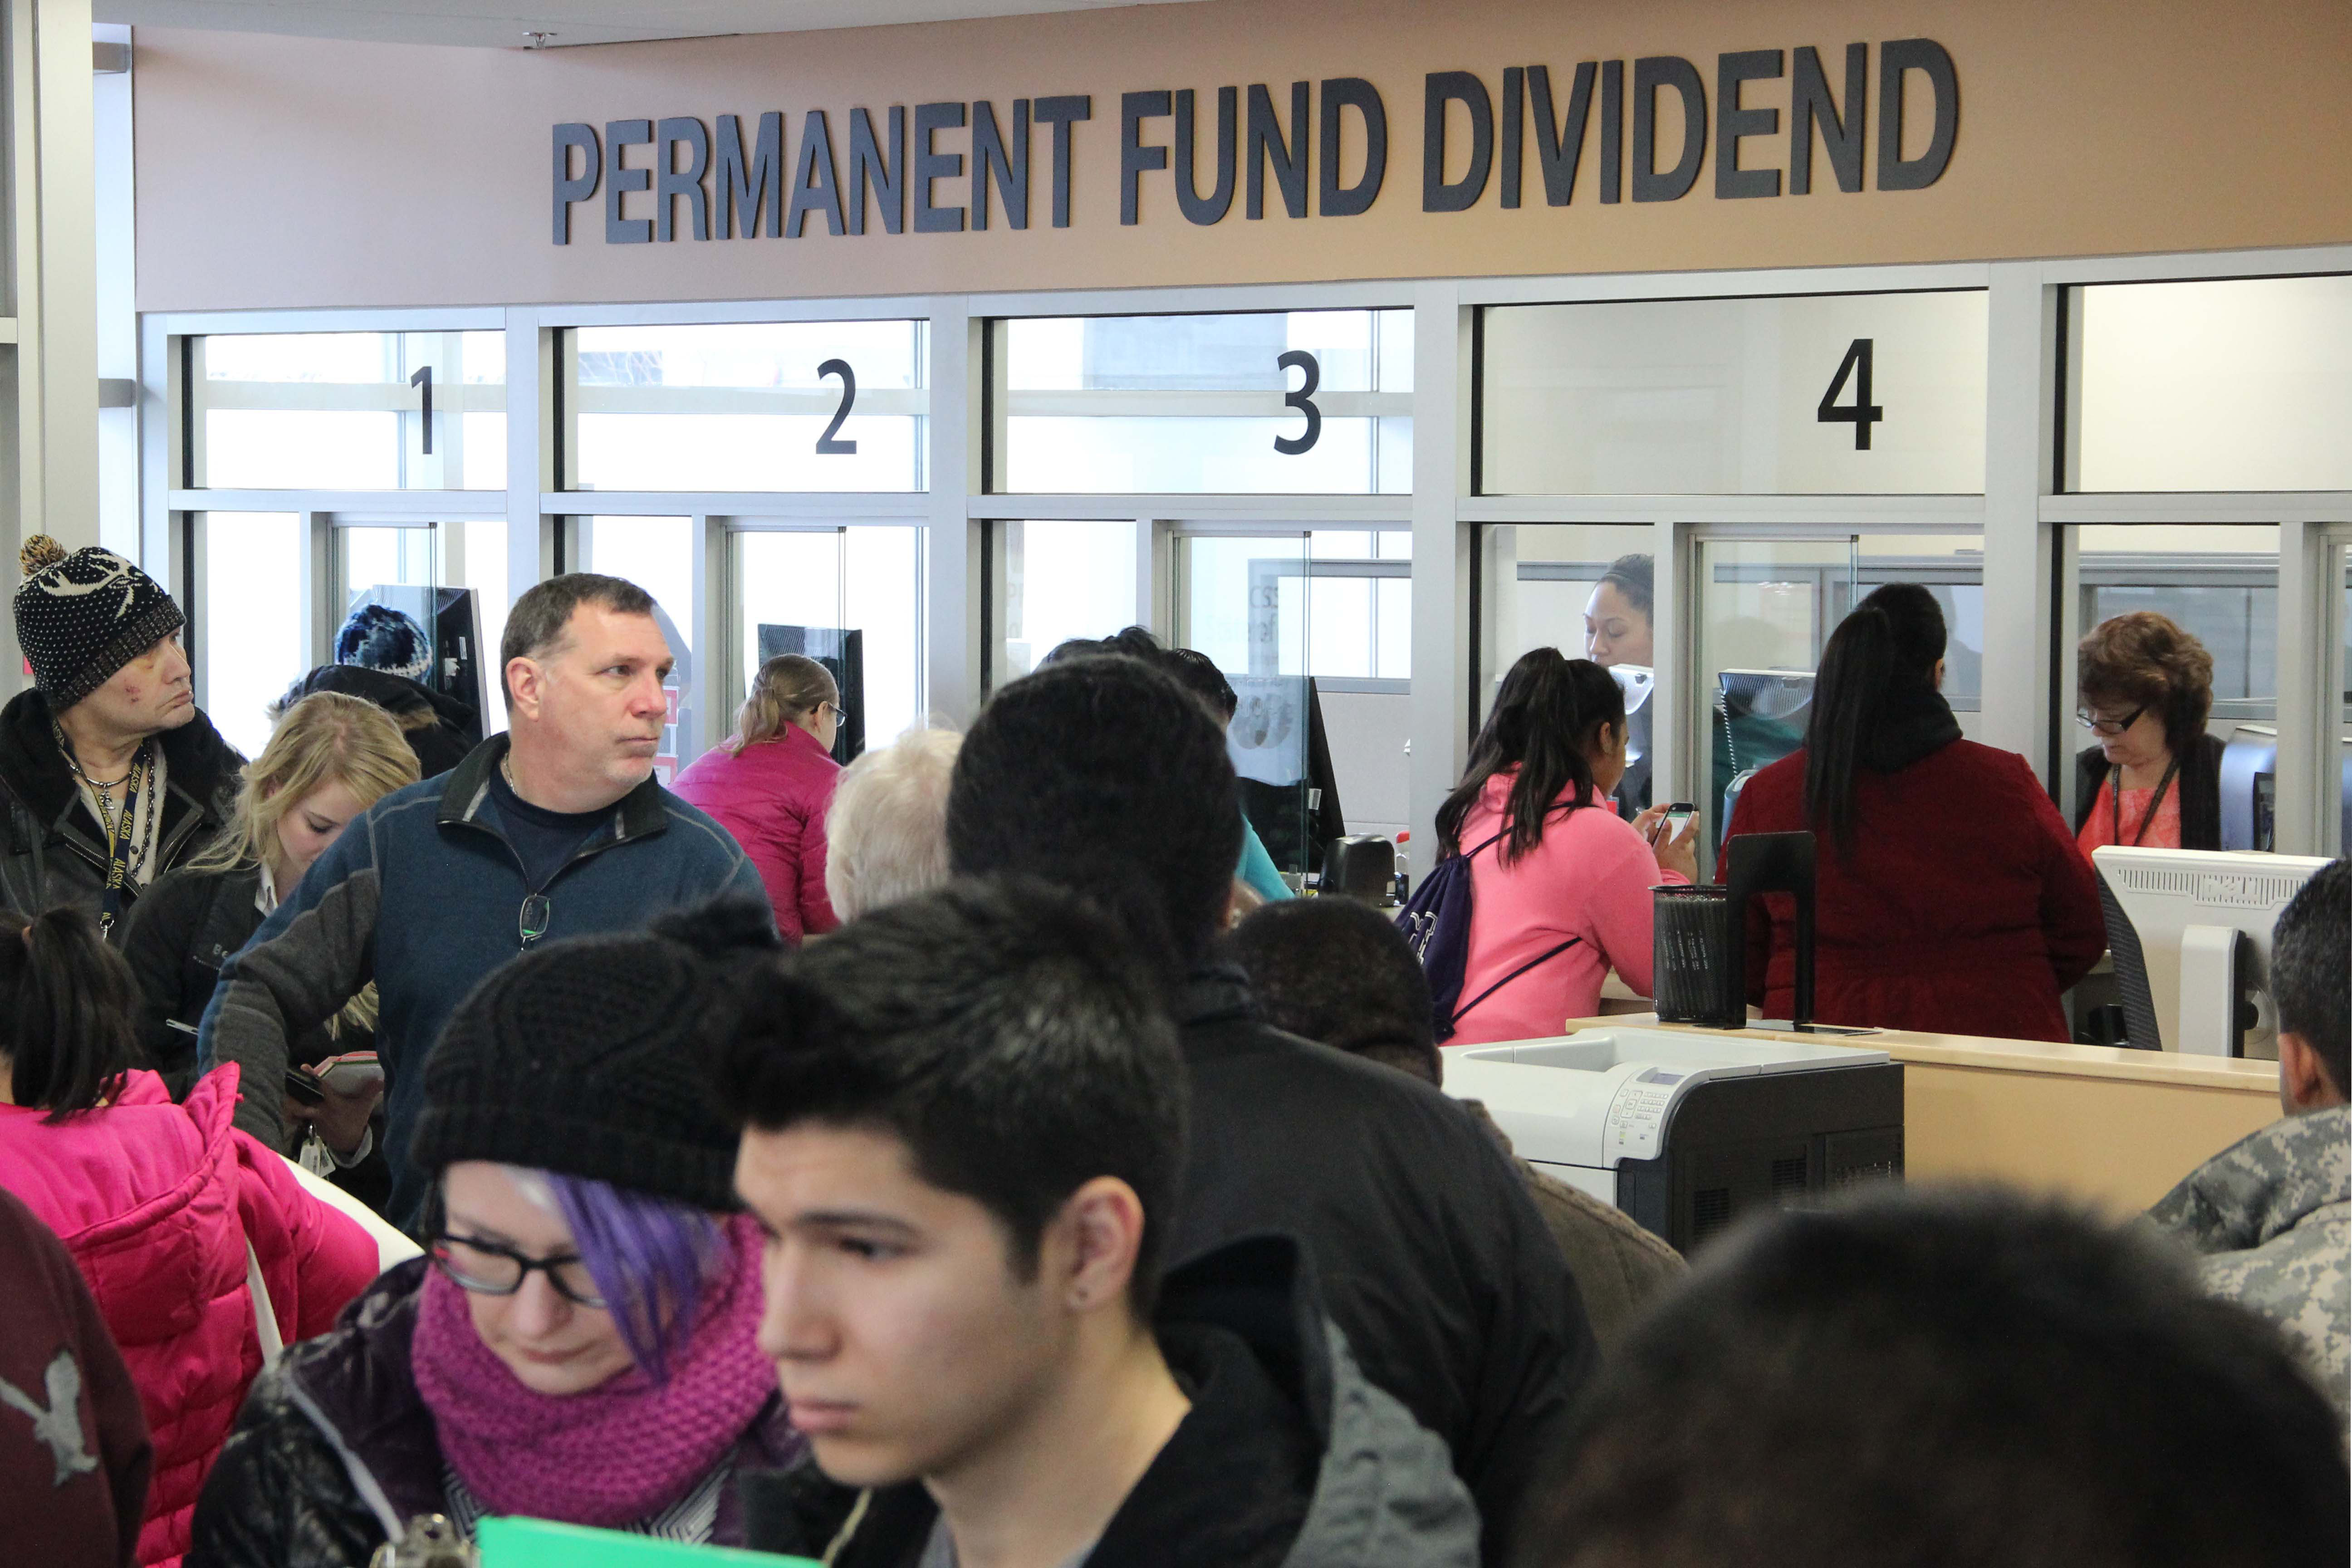 Alaskans wait in line to file their Permanent Fund dividend applications in downtown Anchorage in March 2016. Photo: Rachel Waldholz, APRN